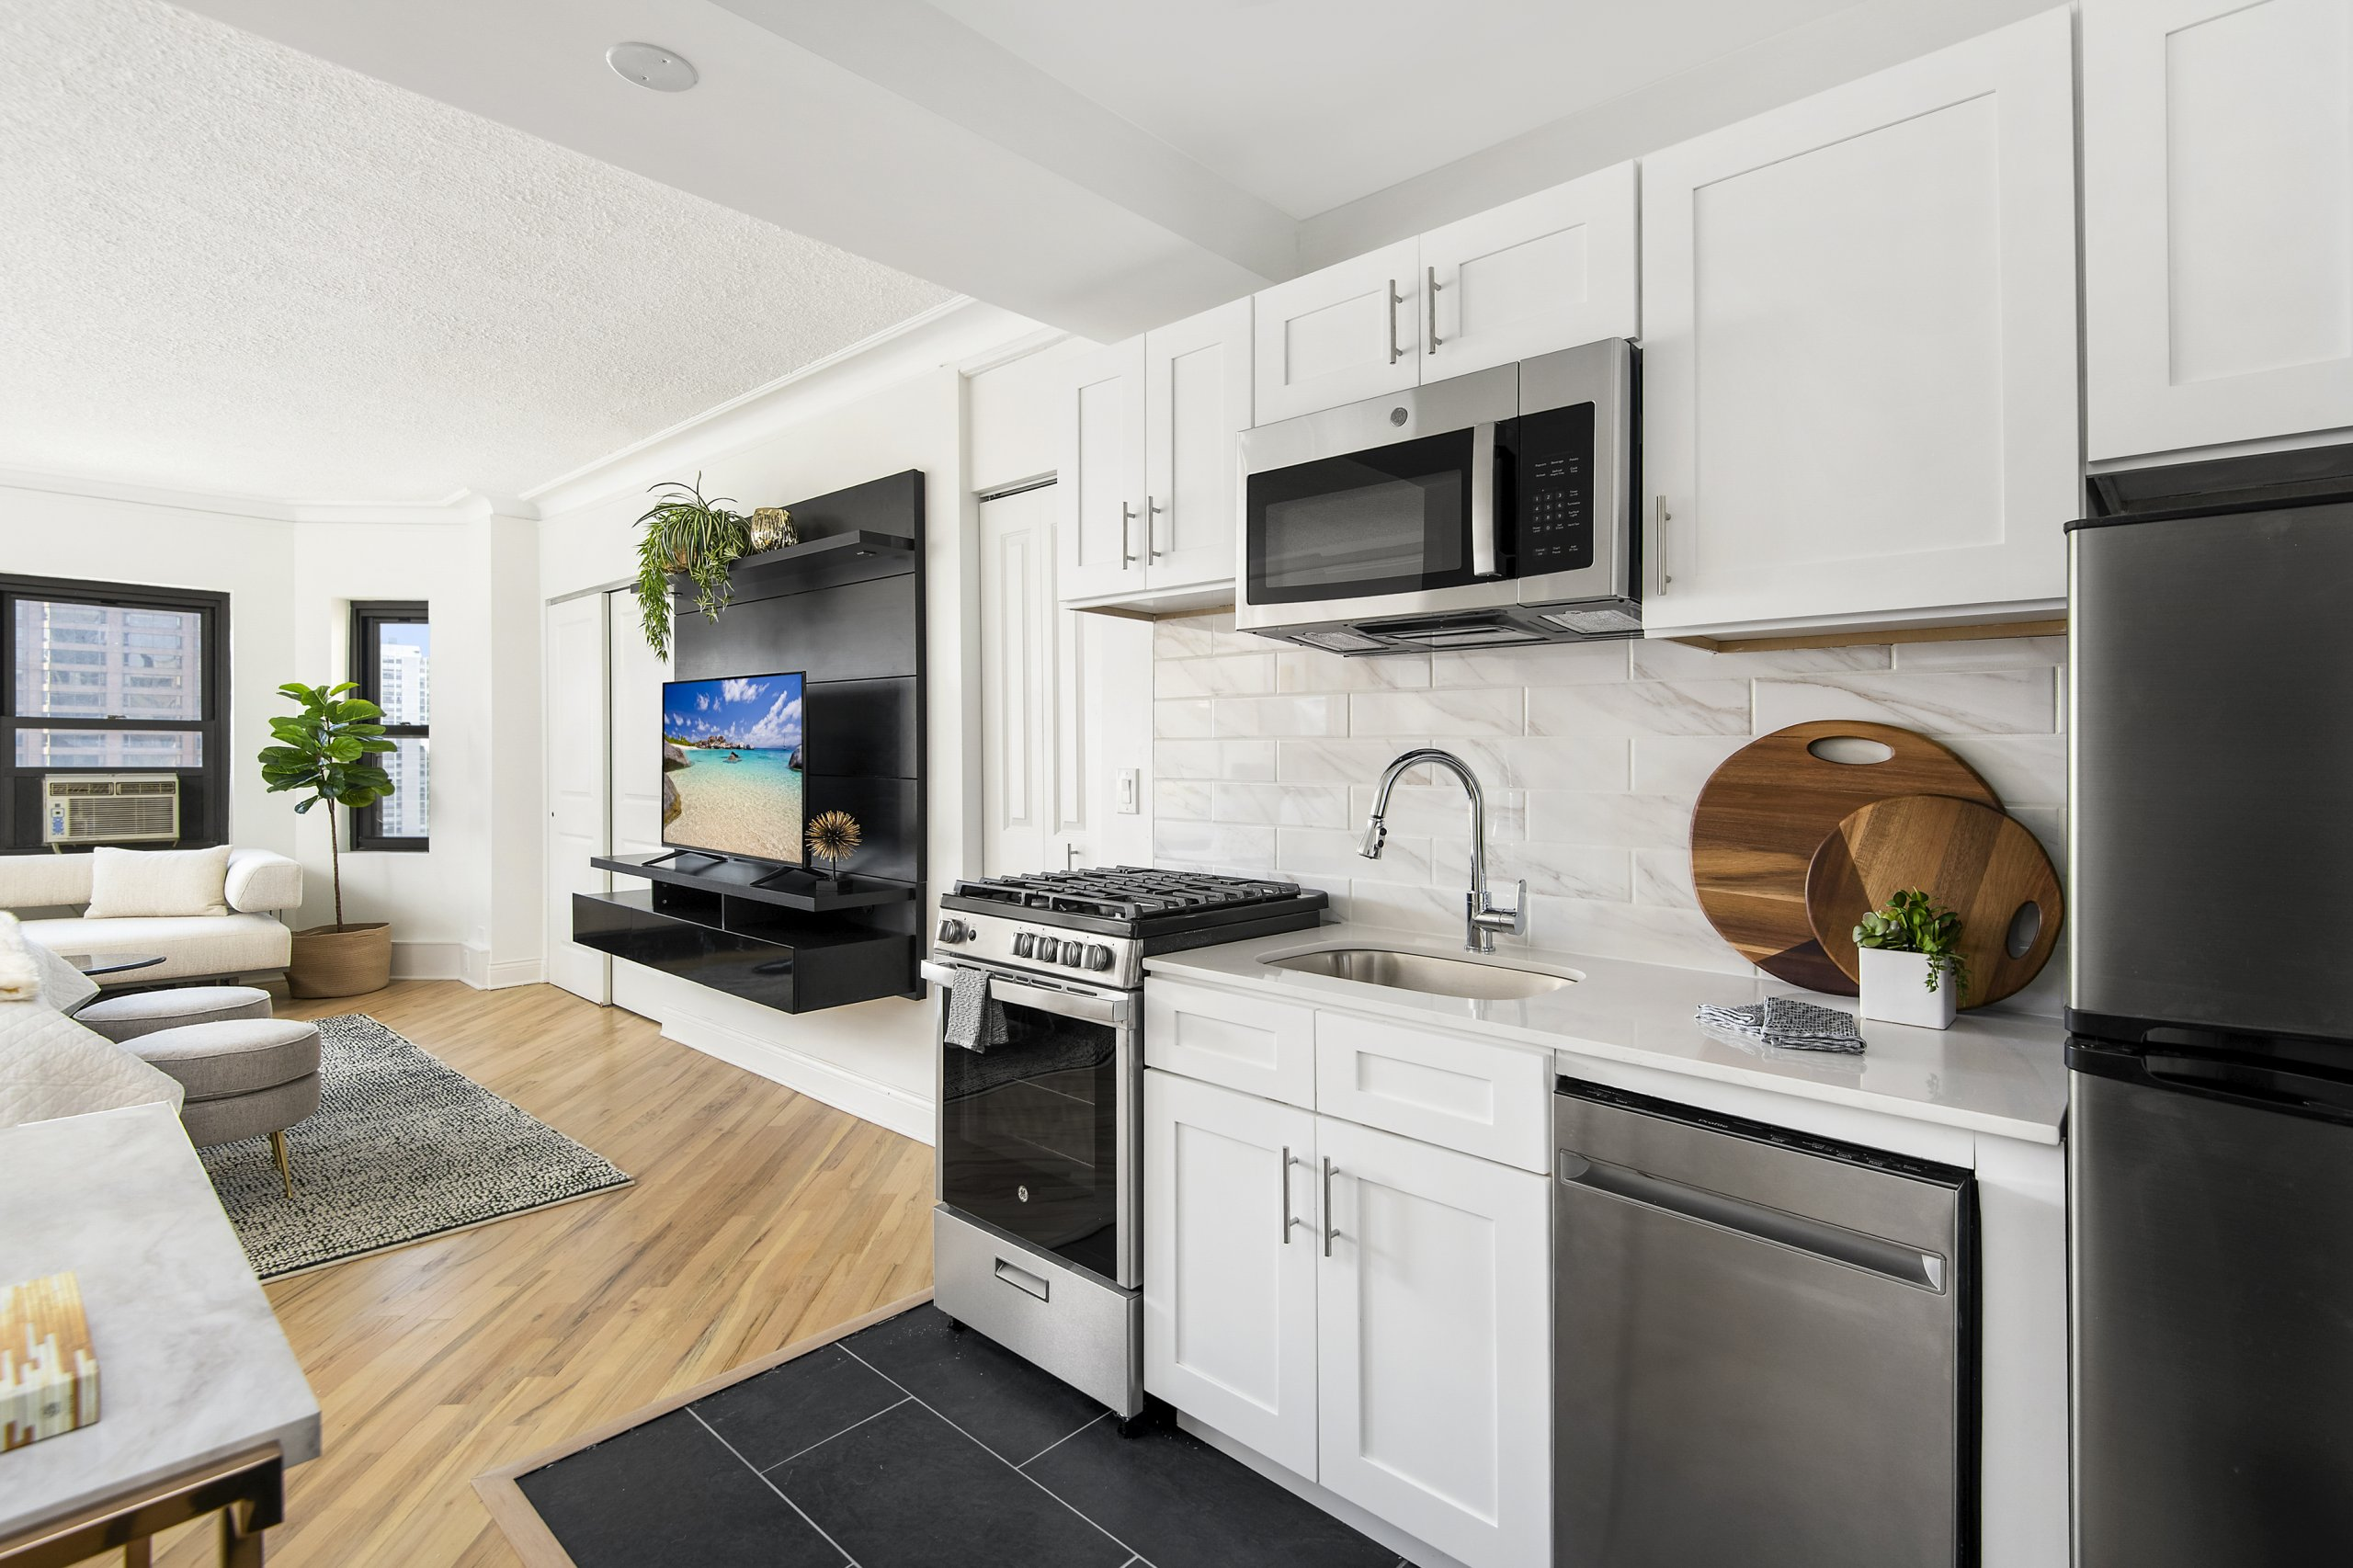 Studio apartments 2 bed apartments available now with rooftop in the Gold Coast downtown Chicago